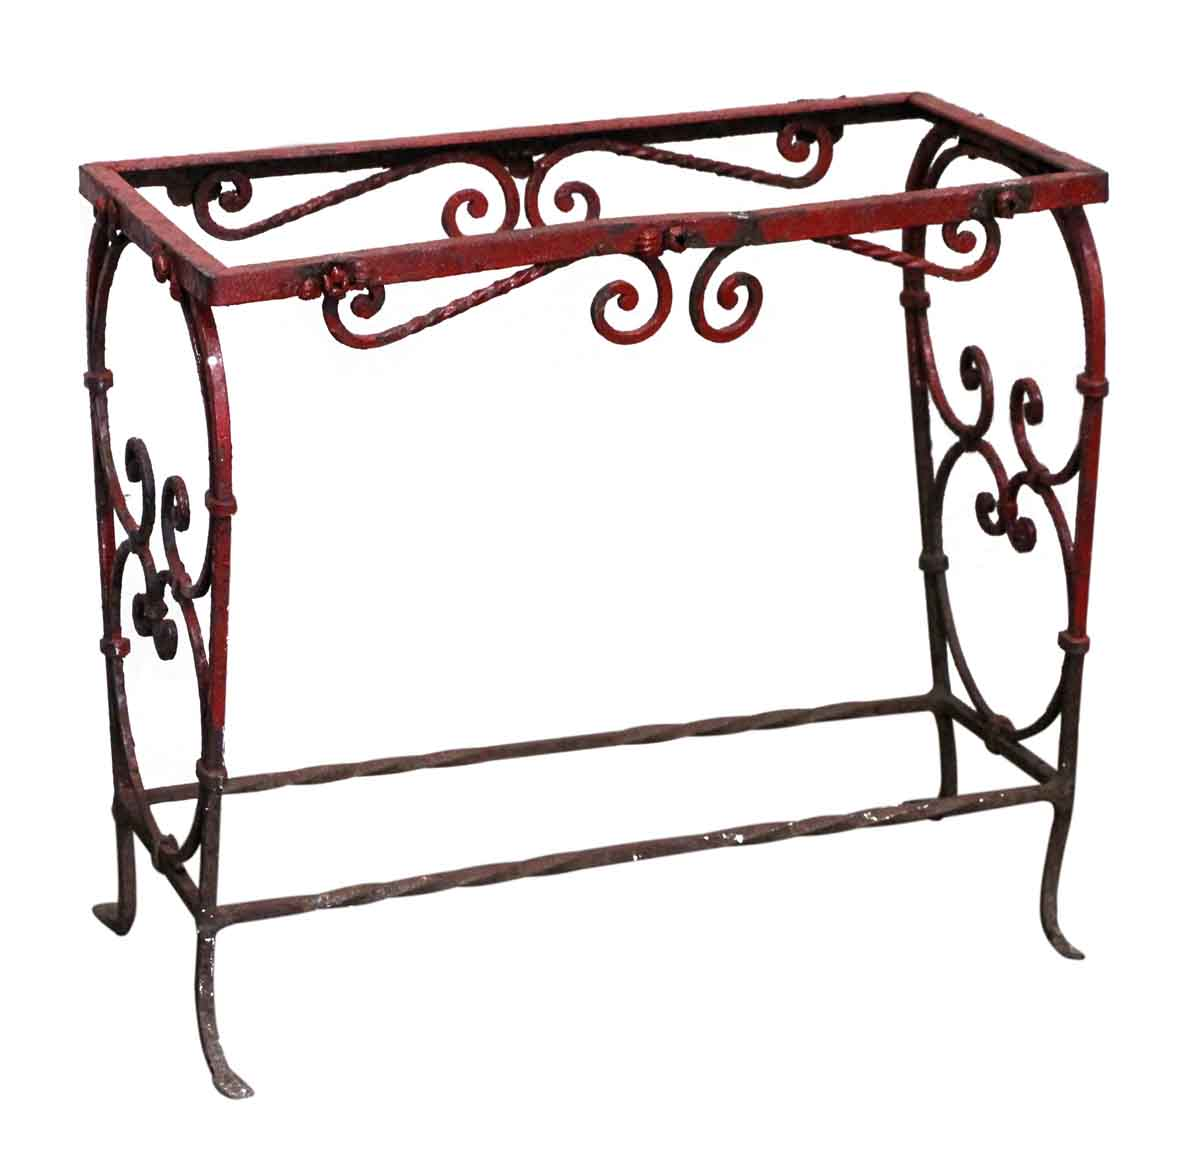 Patio Furniture Wrought Iron Red Side Table Or Aquarium Stand